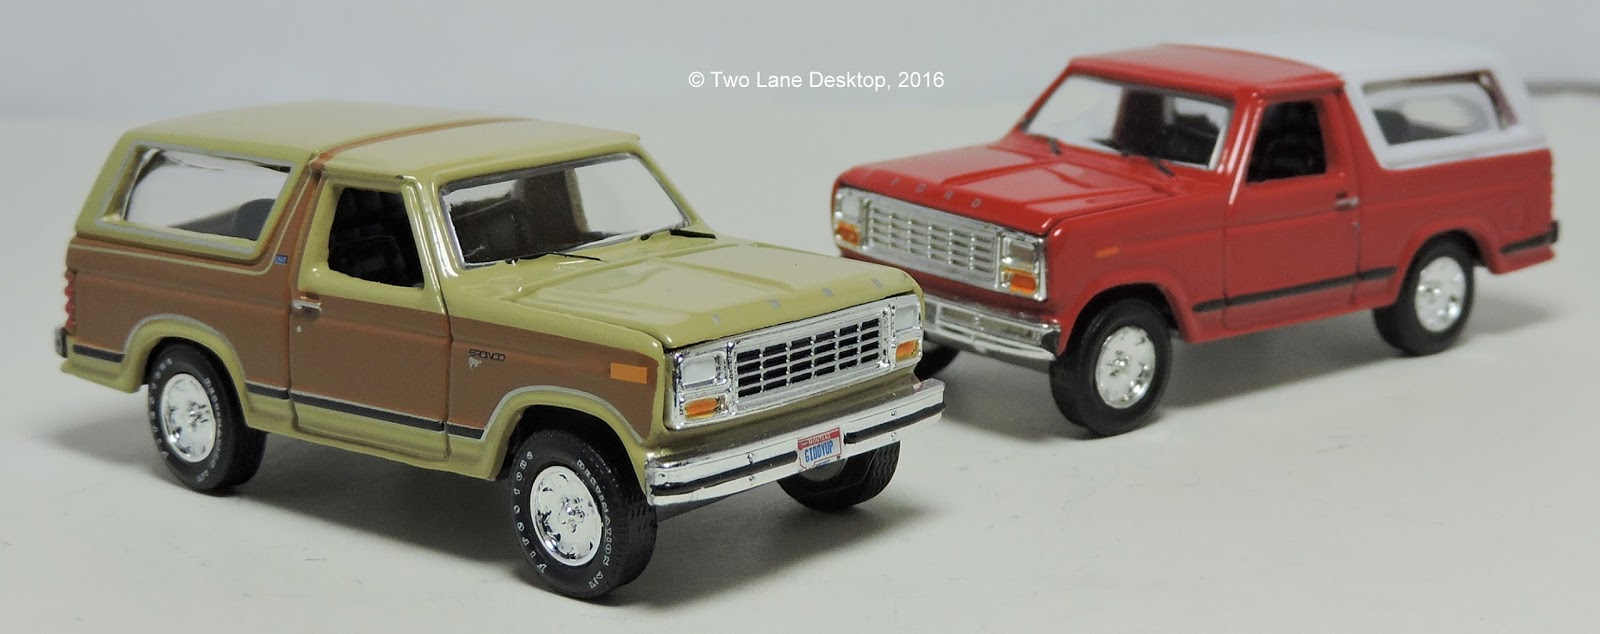 Racing Champions Mint 1980 Ford Bronco Two Lane Desktop Blue As For The Larger Sibling In 1980s Not Many Replicas Have Been Made Hot Wheels A Rugged Version With Plastic Roof Section At Rear